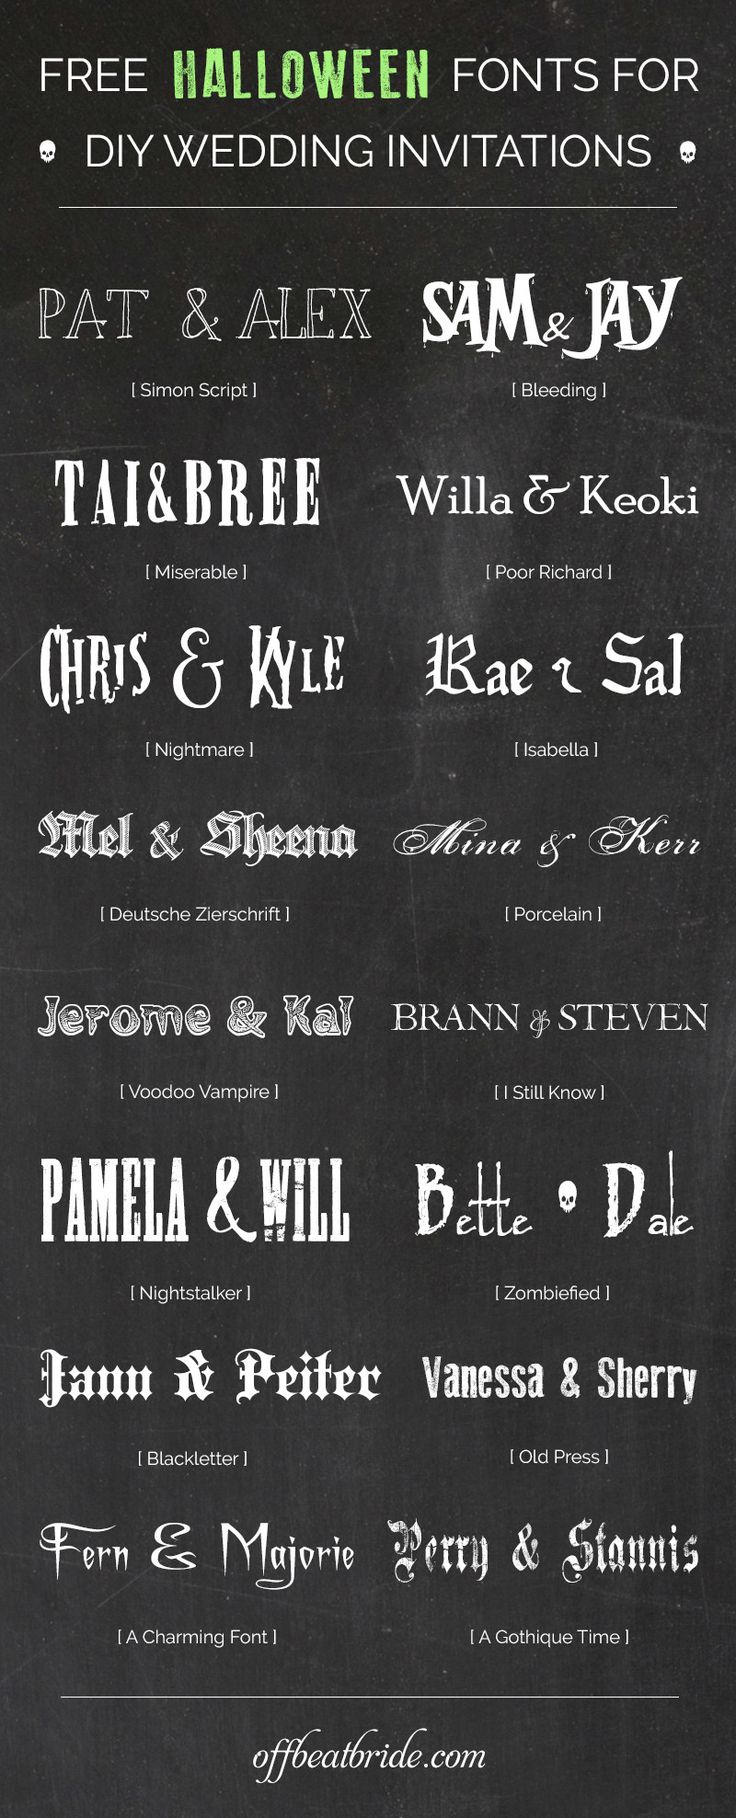 free halloween fonts for scarily good diy wedding invitations - Good Halloween Font